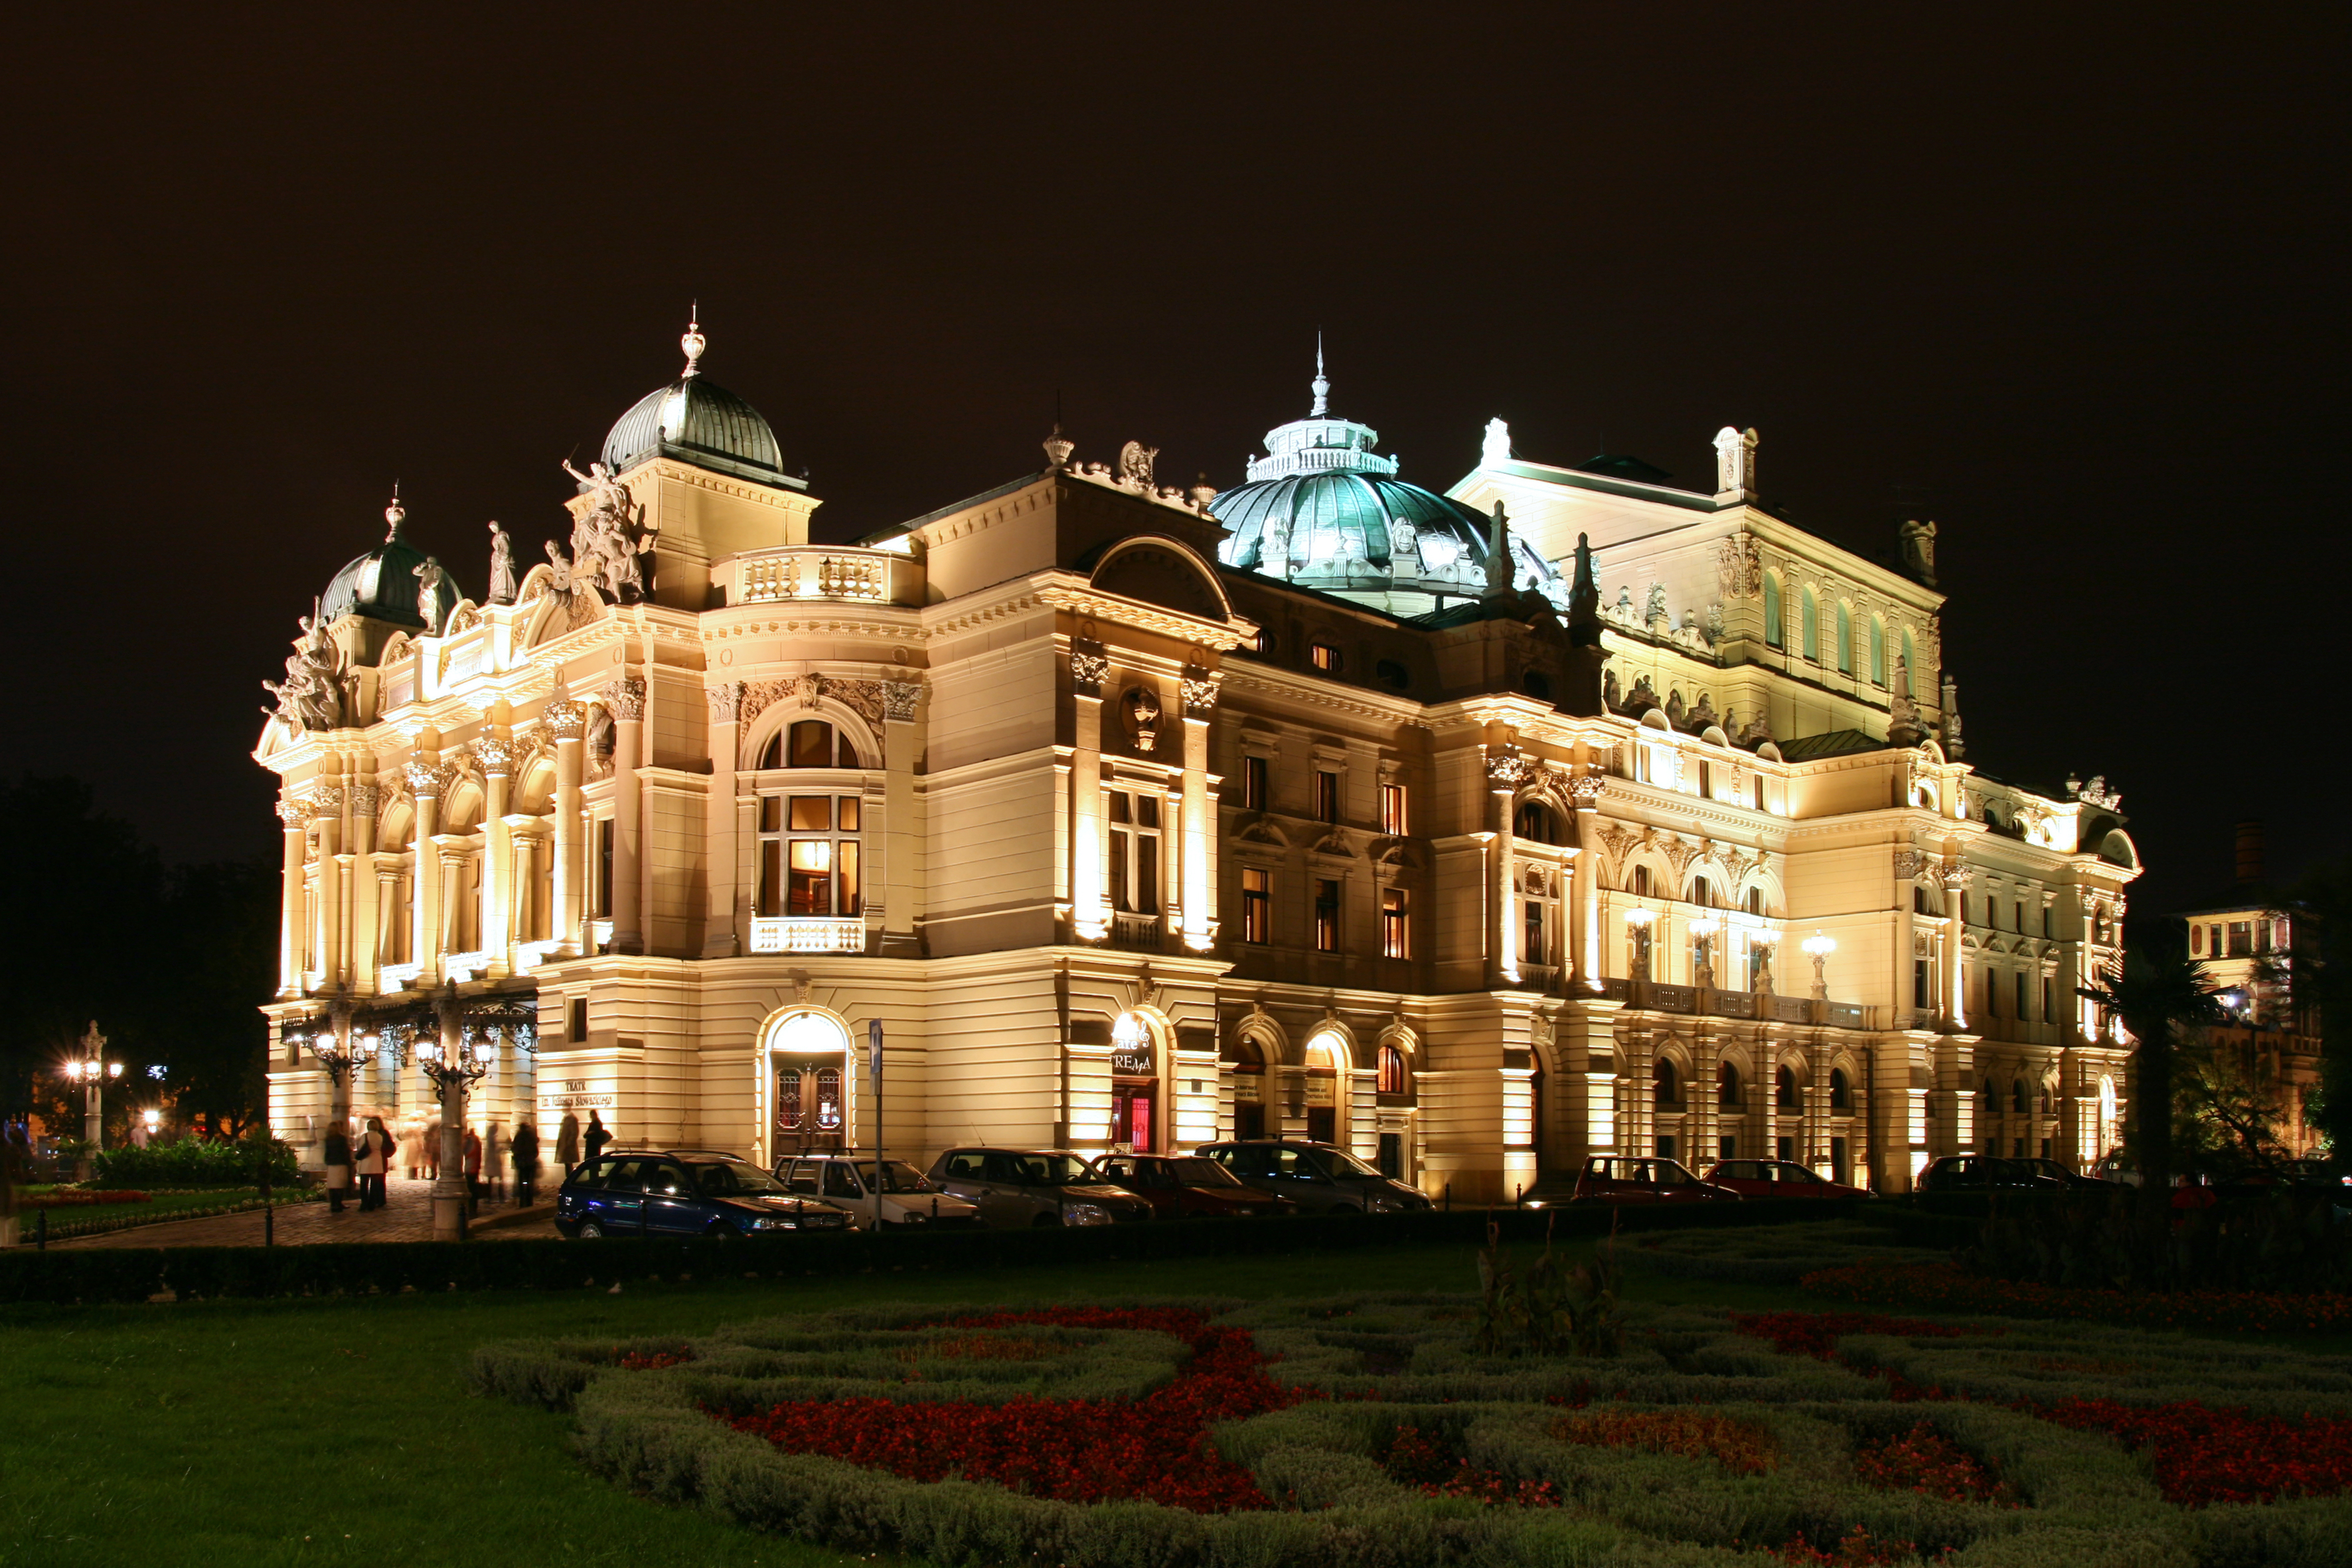 krakow_-_juliusz_slowacki_theatre_by_night_01